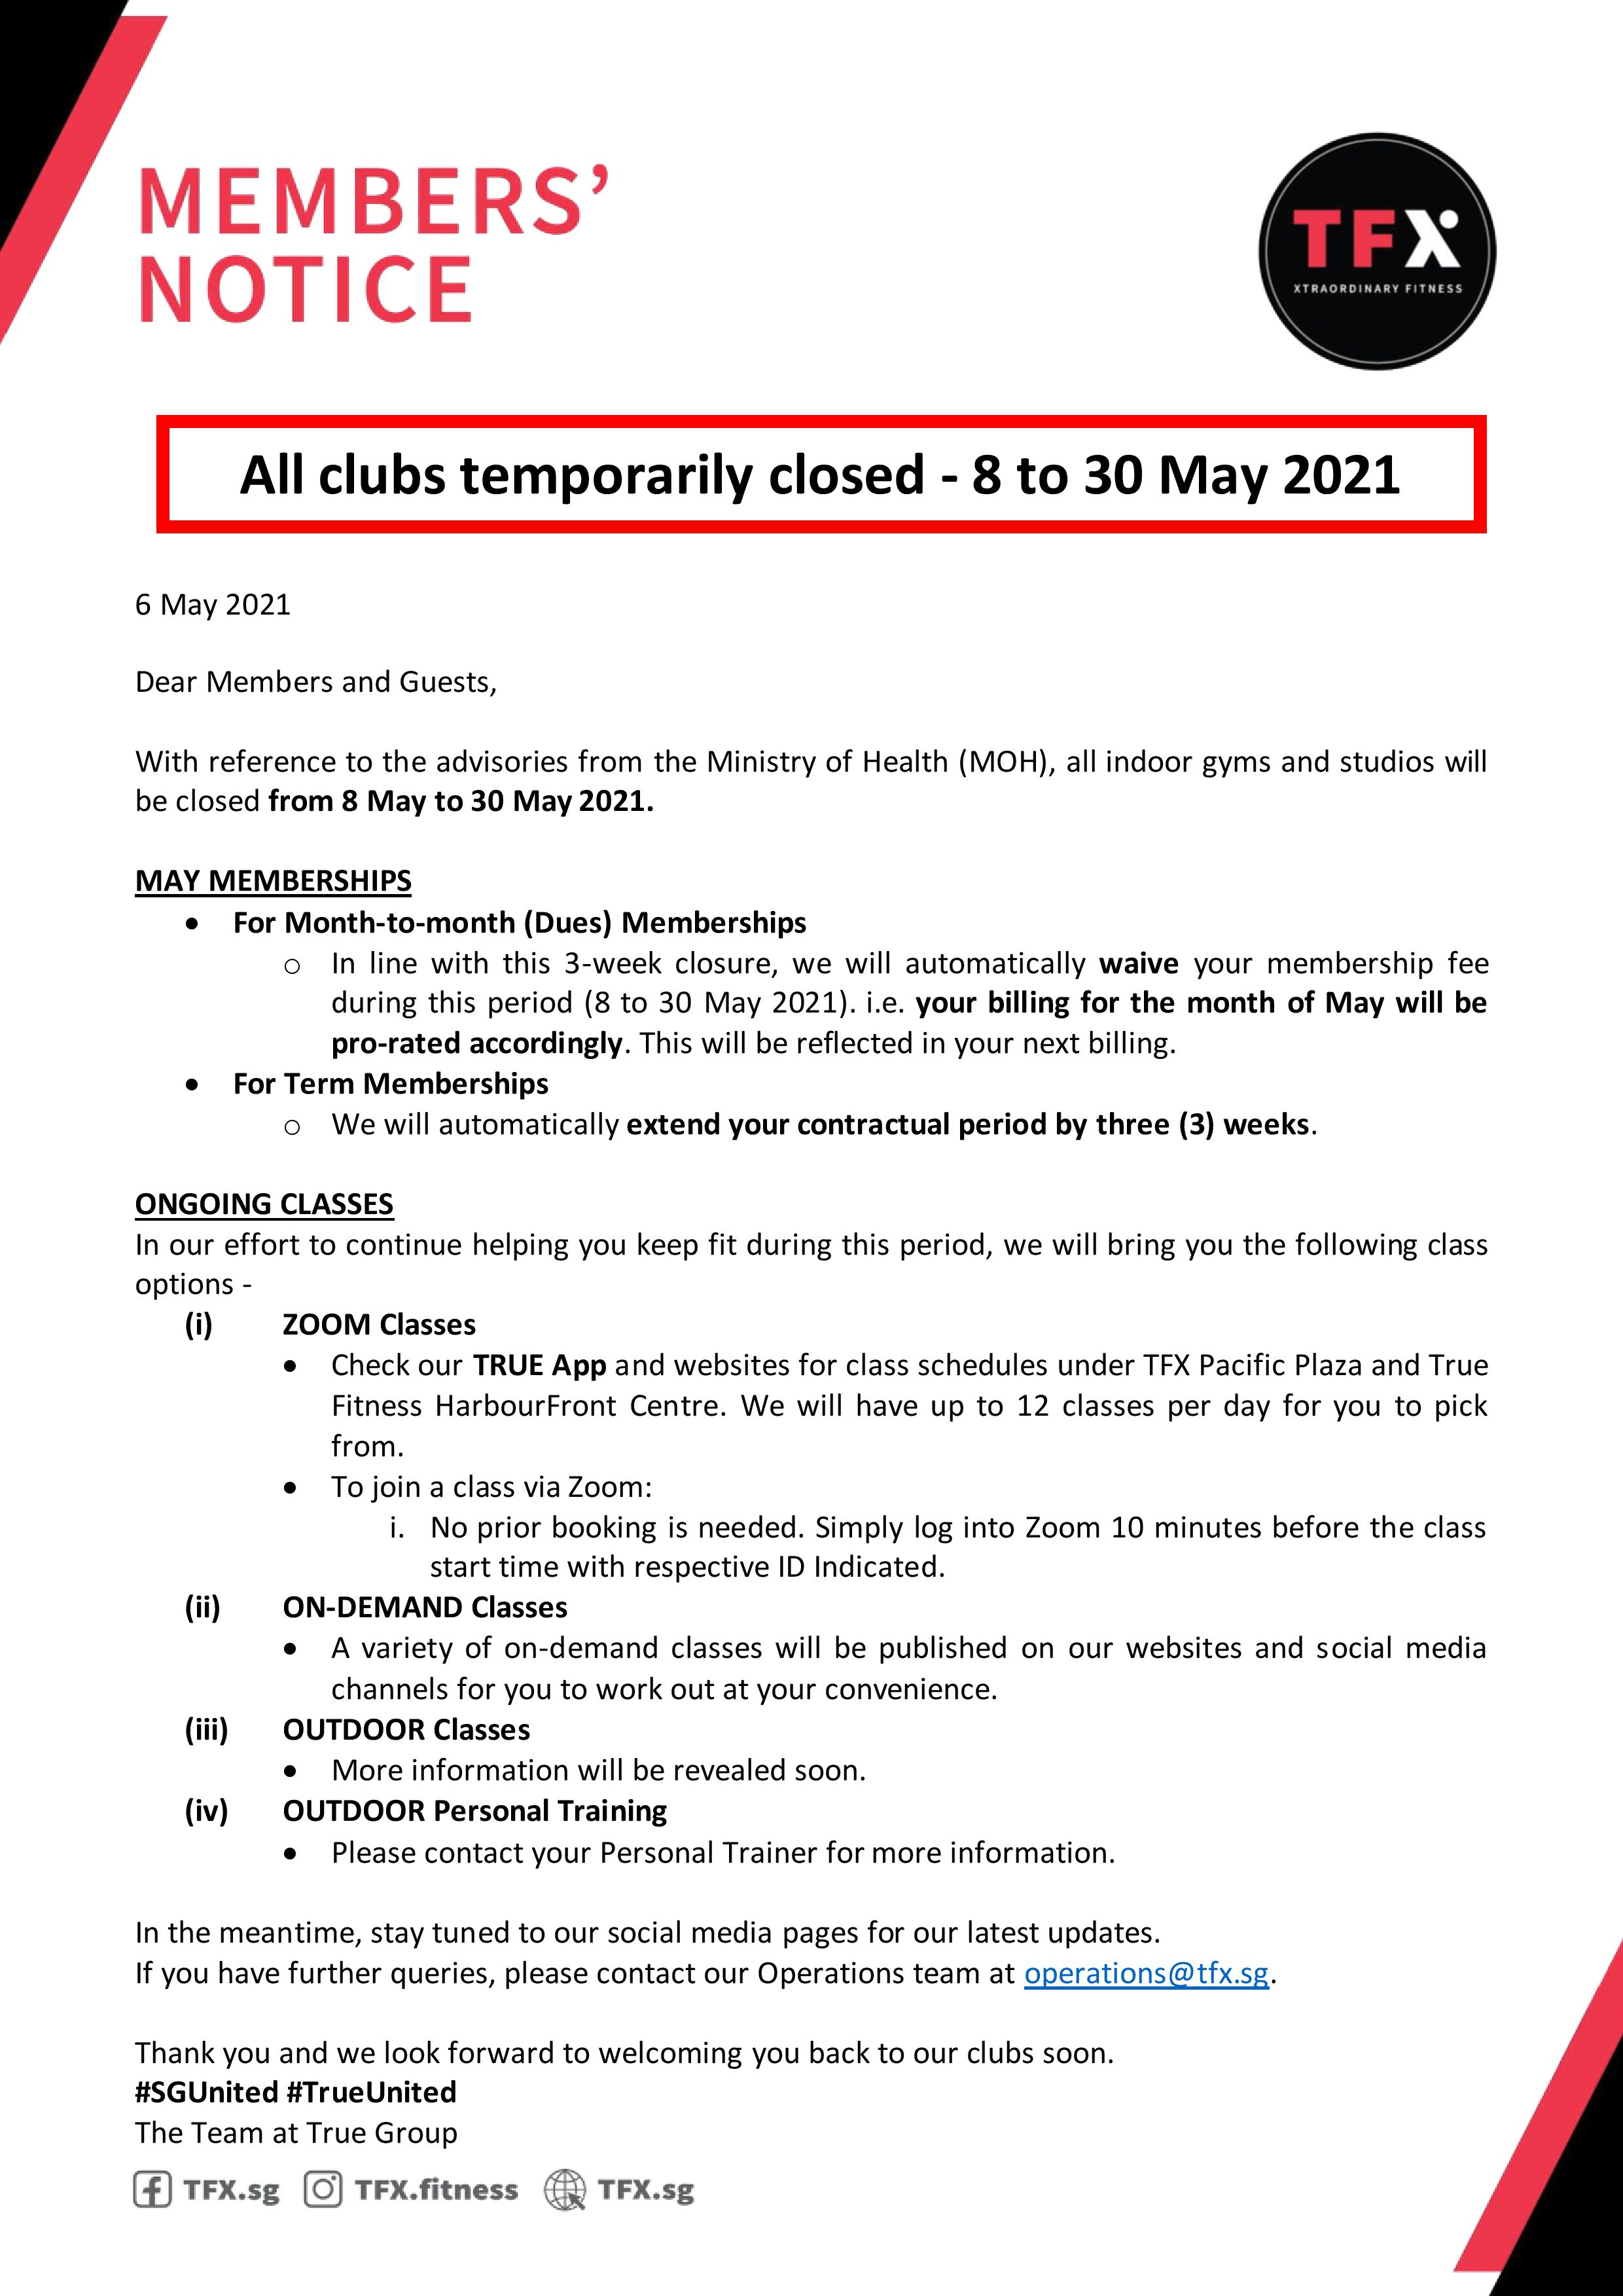 Clubs temporary closed - 8 to 30 May 2021